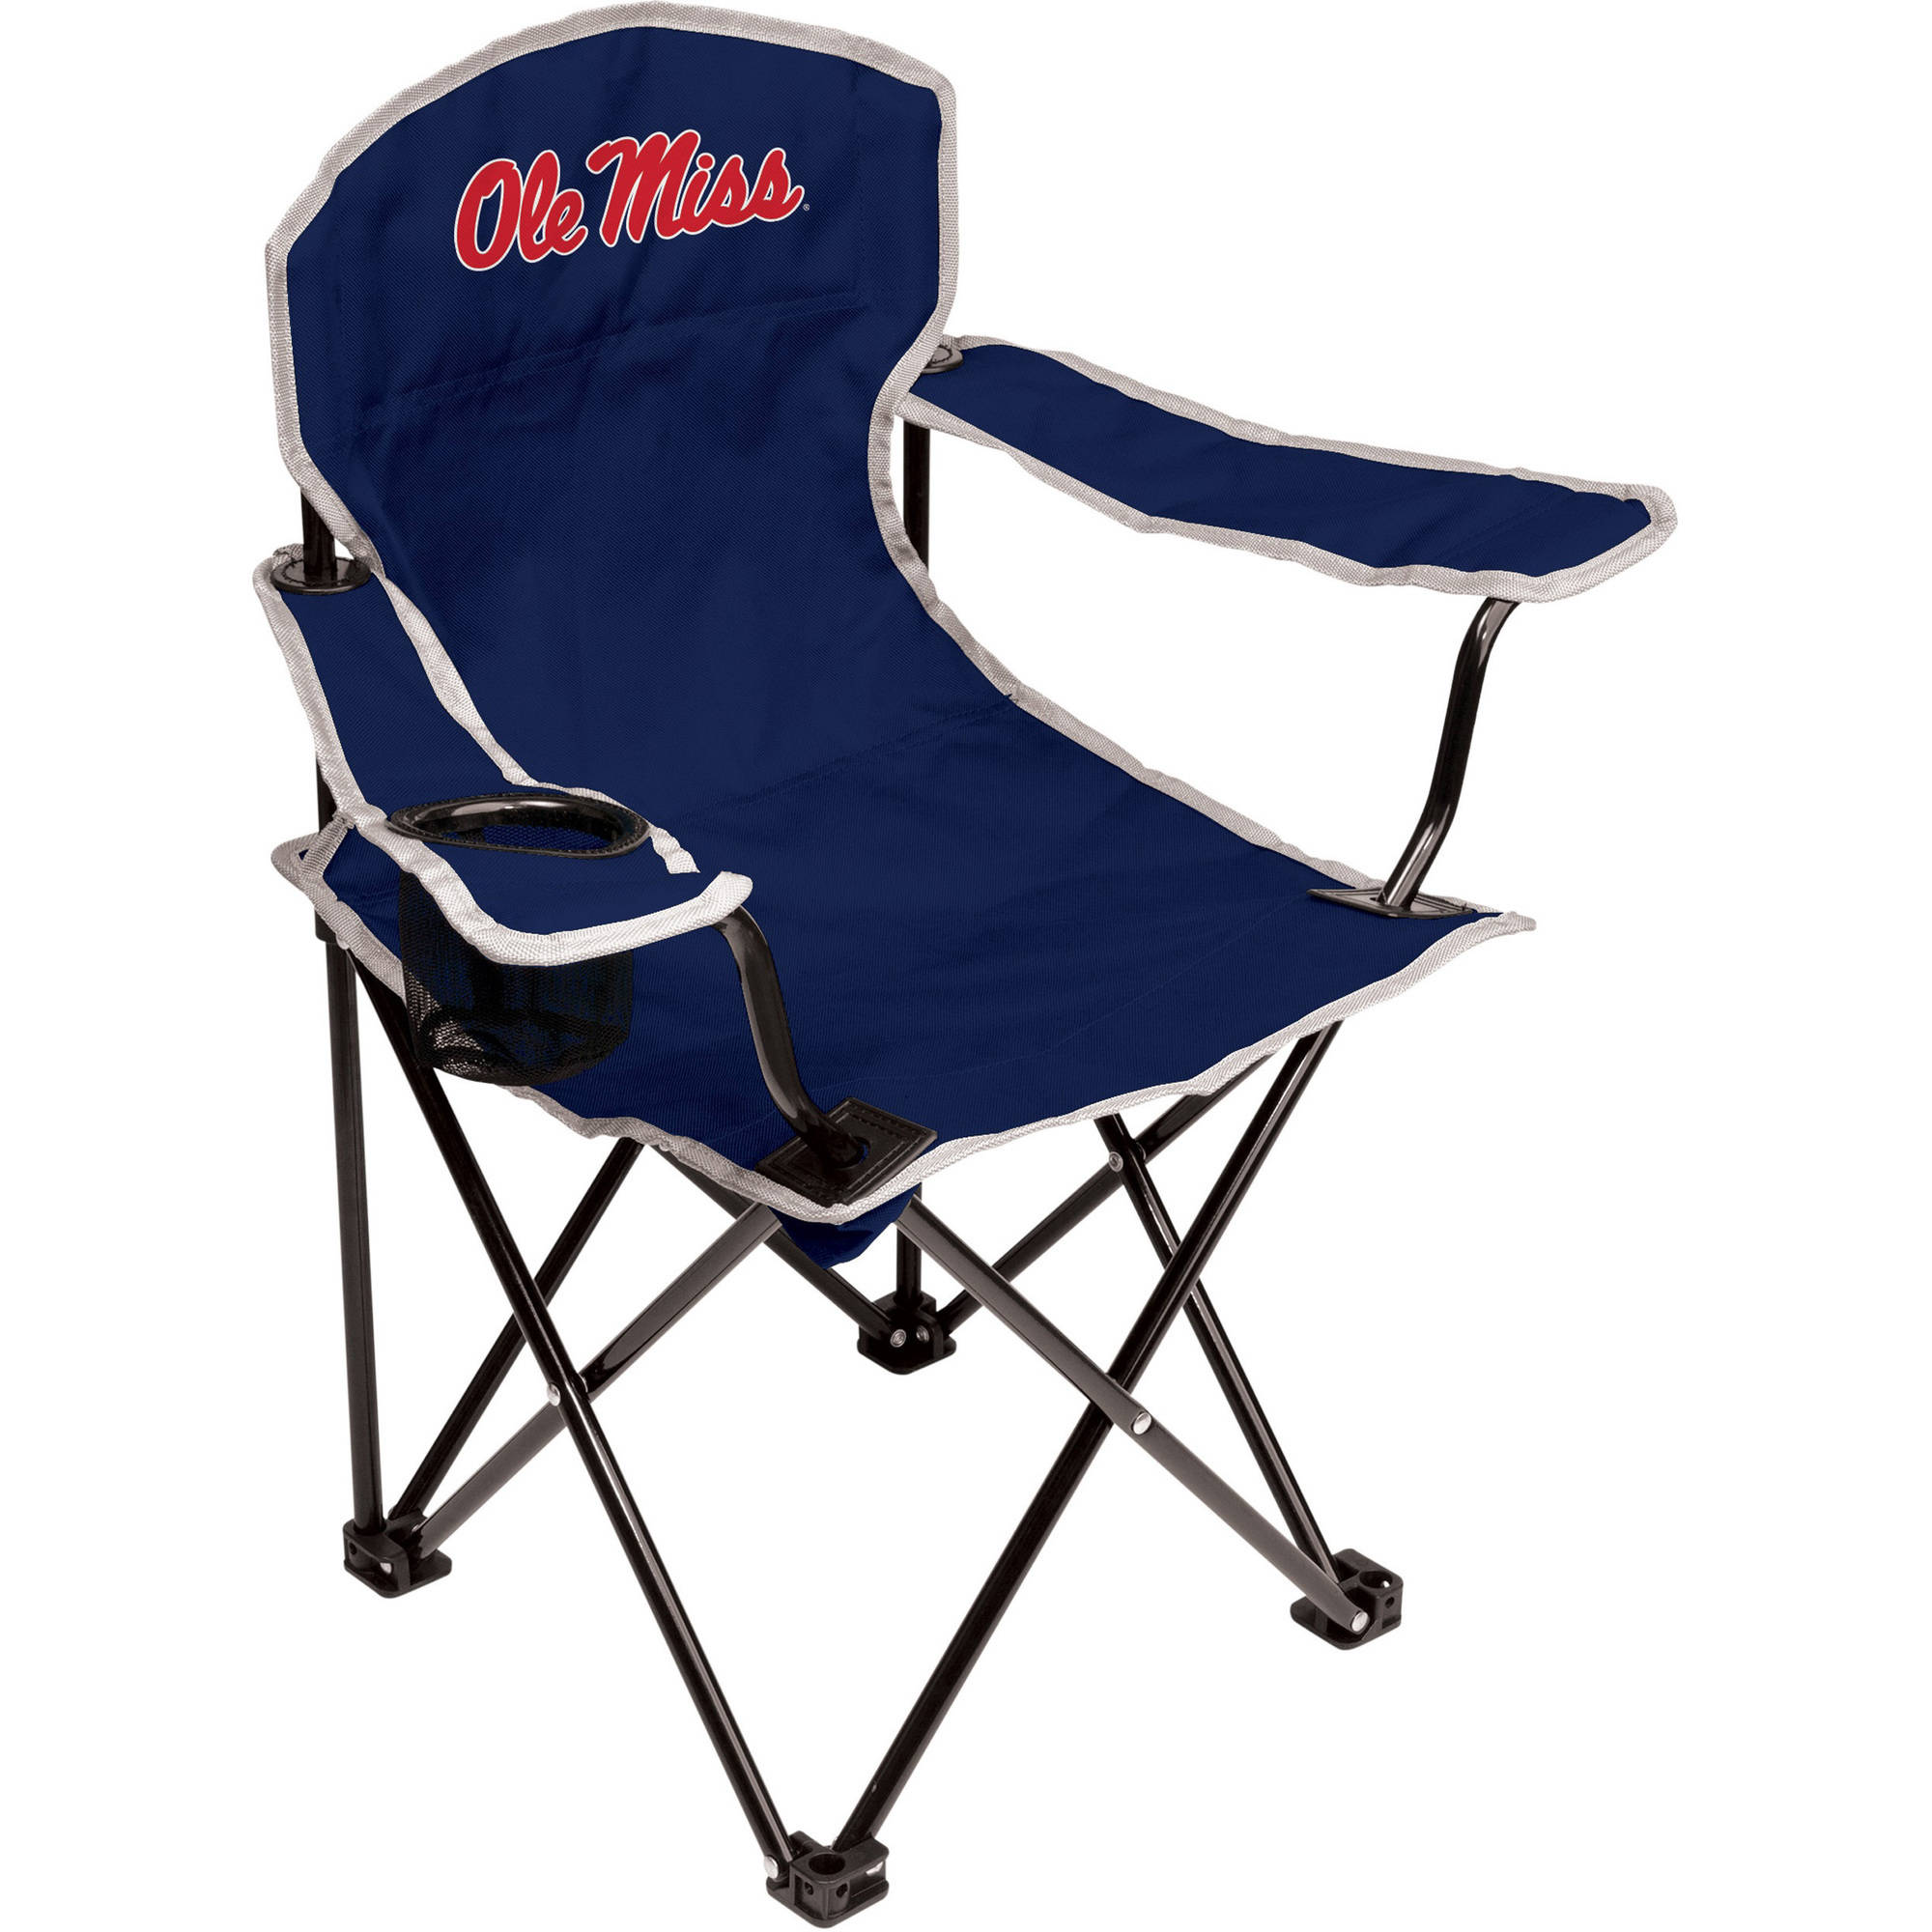 NCAA Mississippi Rebels Youth Size Tailgate Chair from Coleman by Rawlings